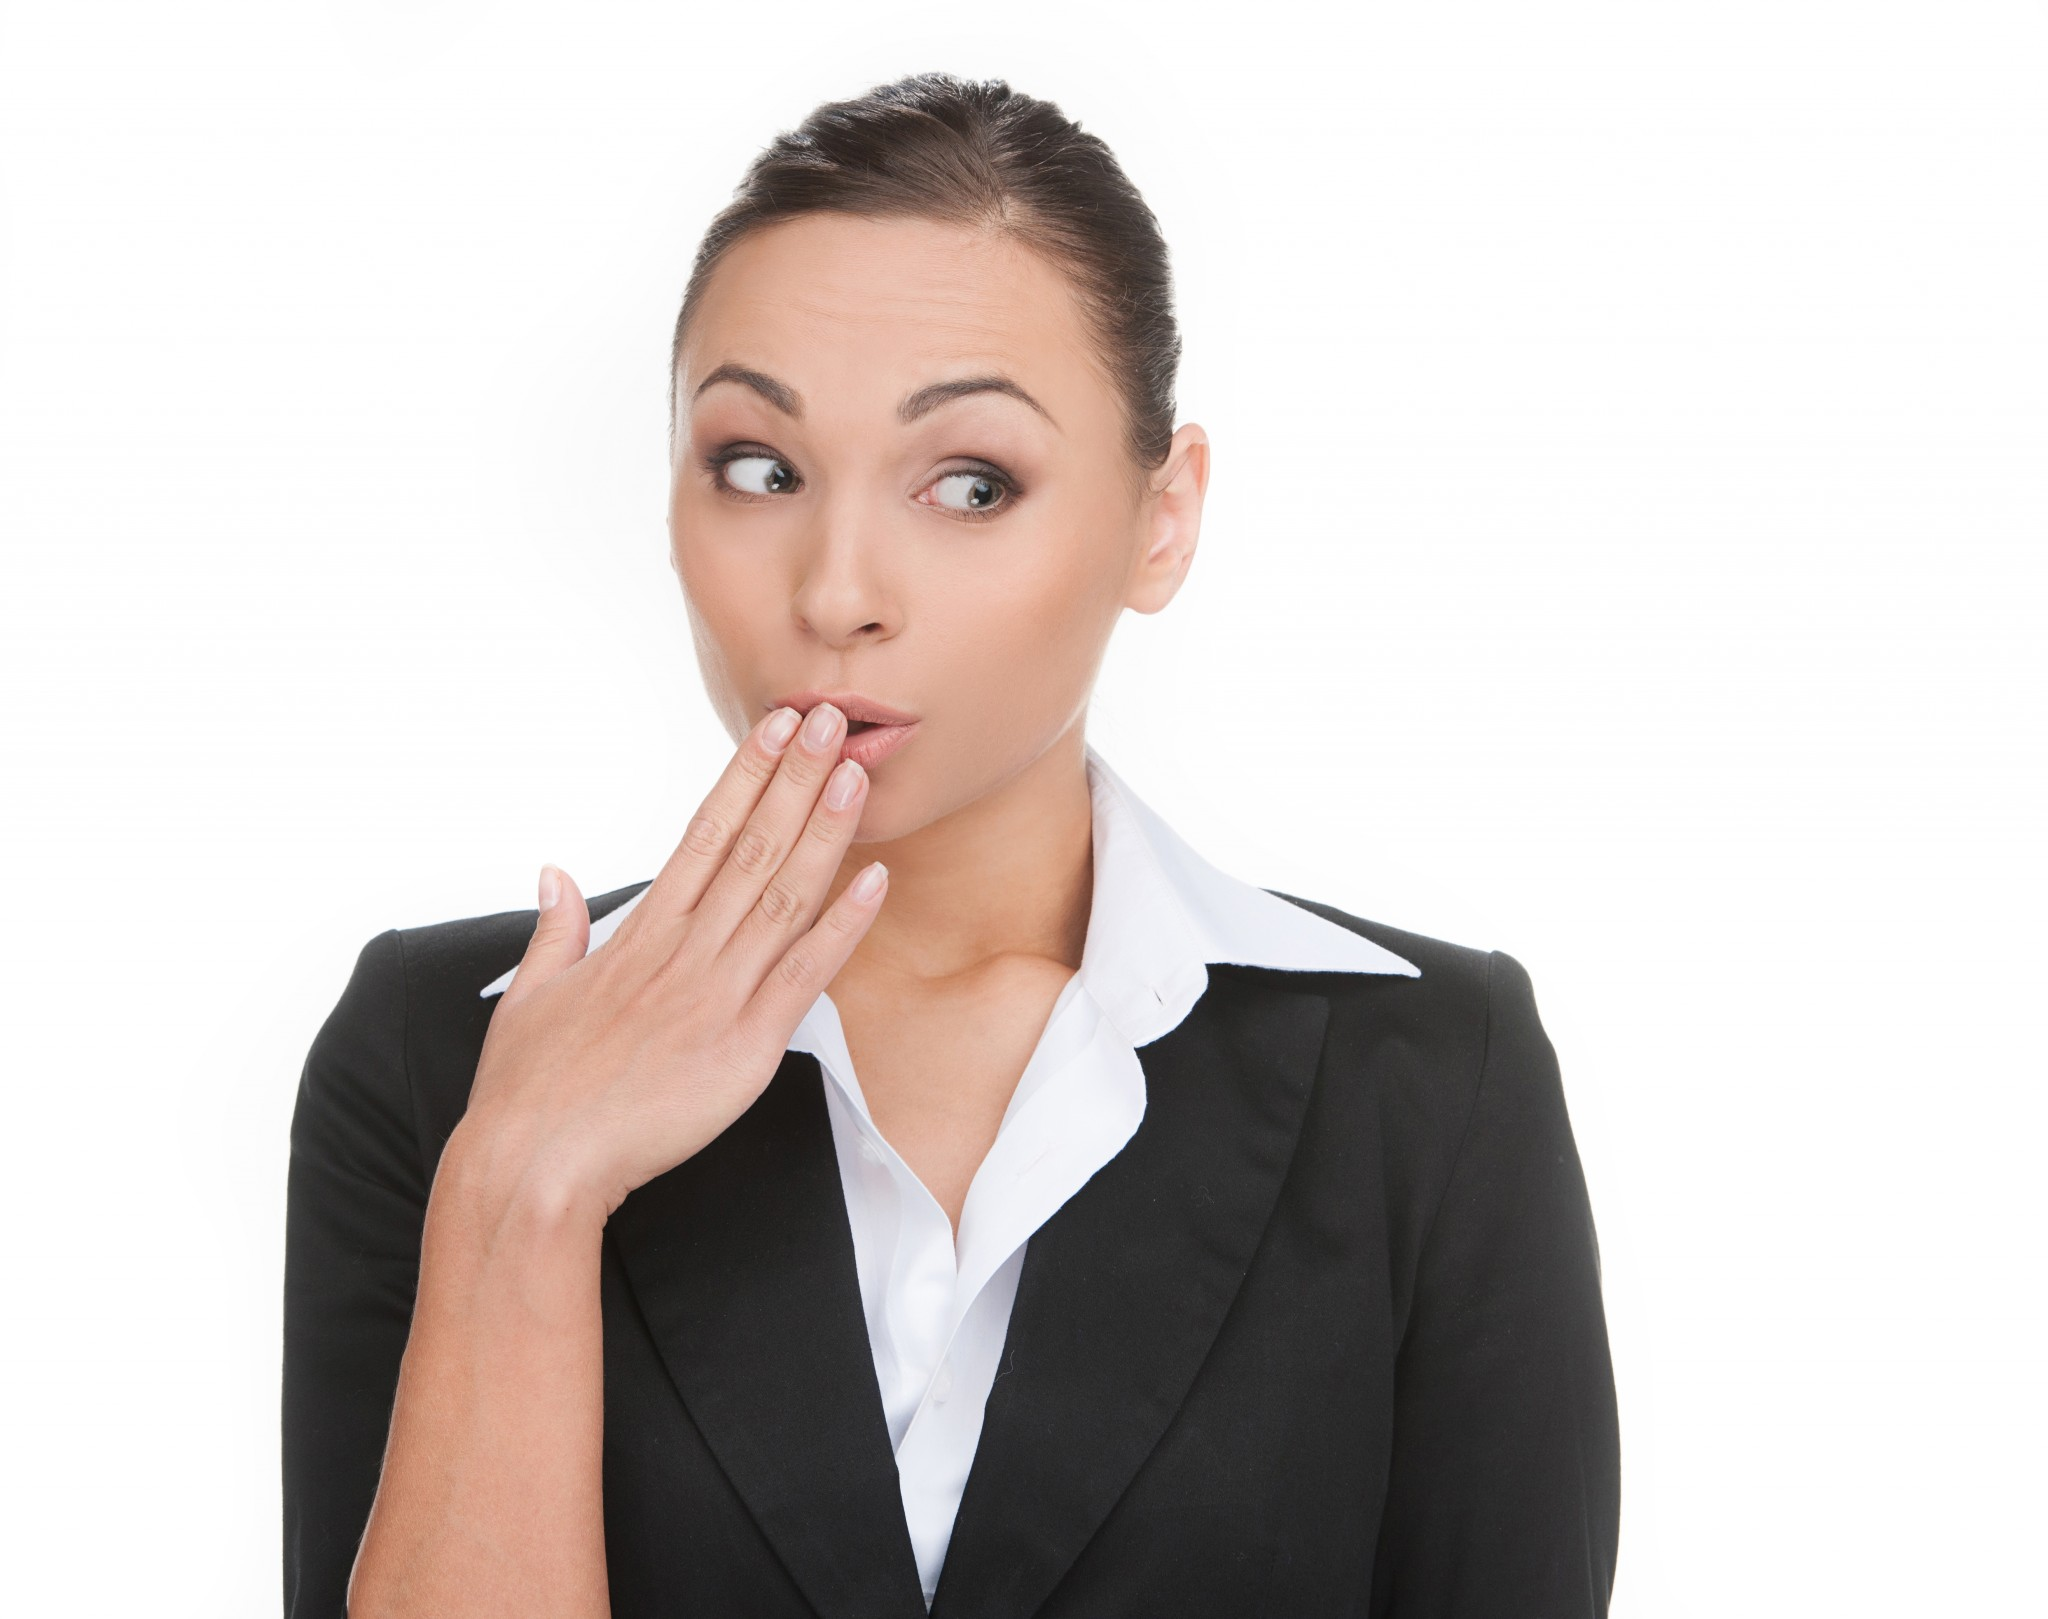 An economic indicator, CEO use of curse words during conference calls Increased during the recession.